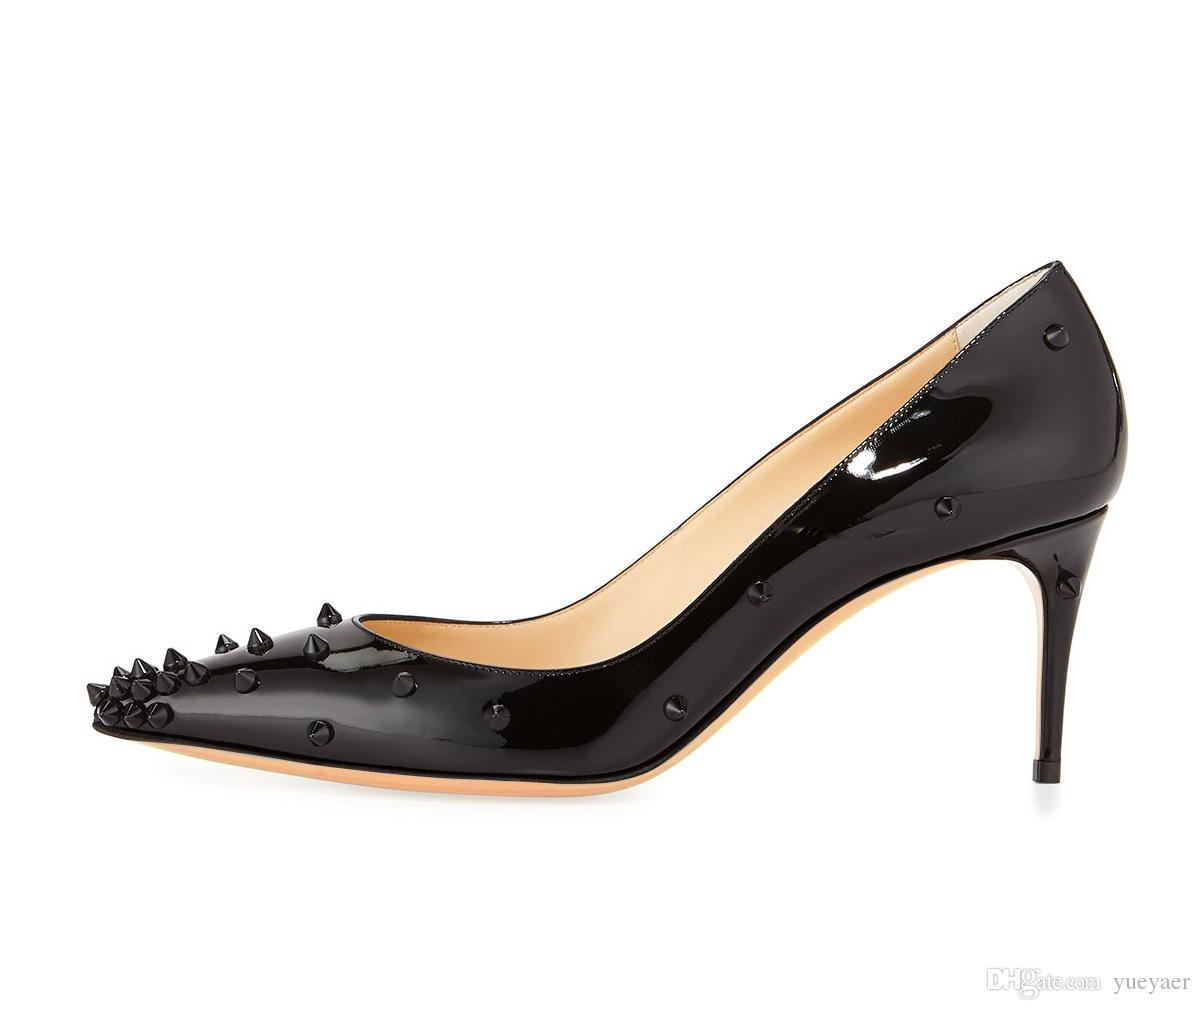 Zandina Donna Donna 65mm Tacco Alto Rivetti Spikes Punta a punta Party Dress Sera Scarpe a spillo Nero K332